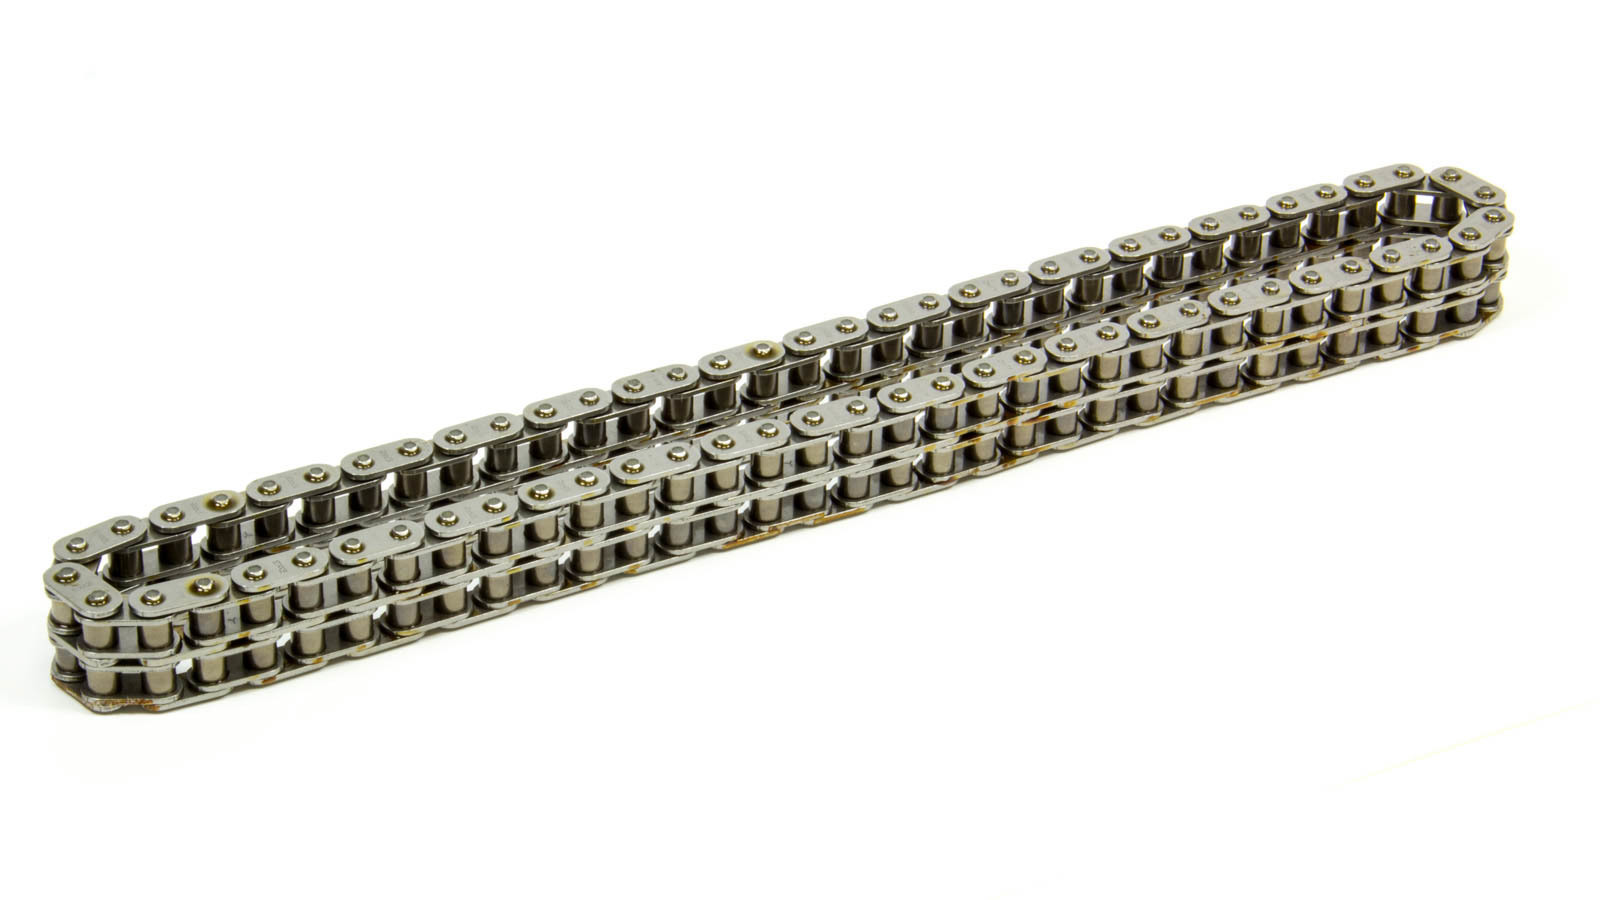 Rollmaster-Romac 3DR68-2 Timing Chain, Double Roller, 68 Link, Each